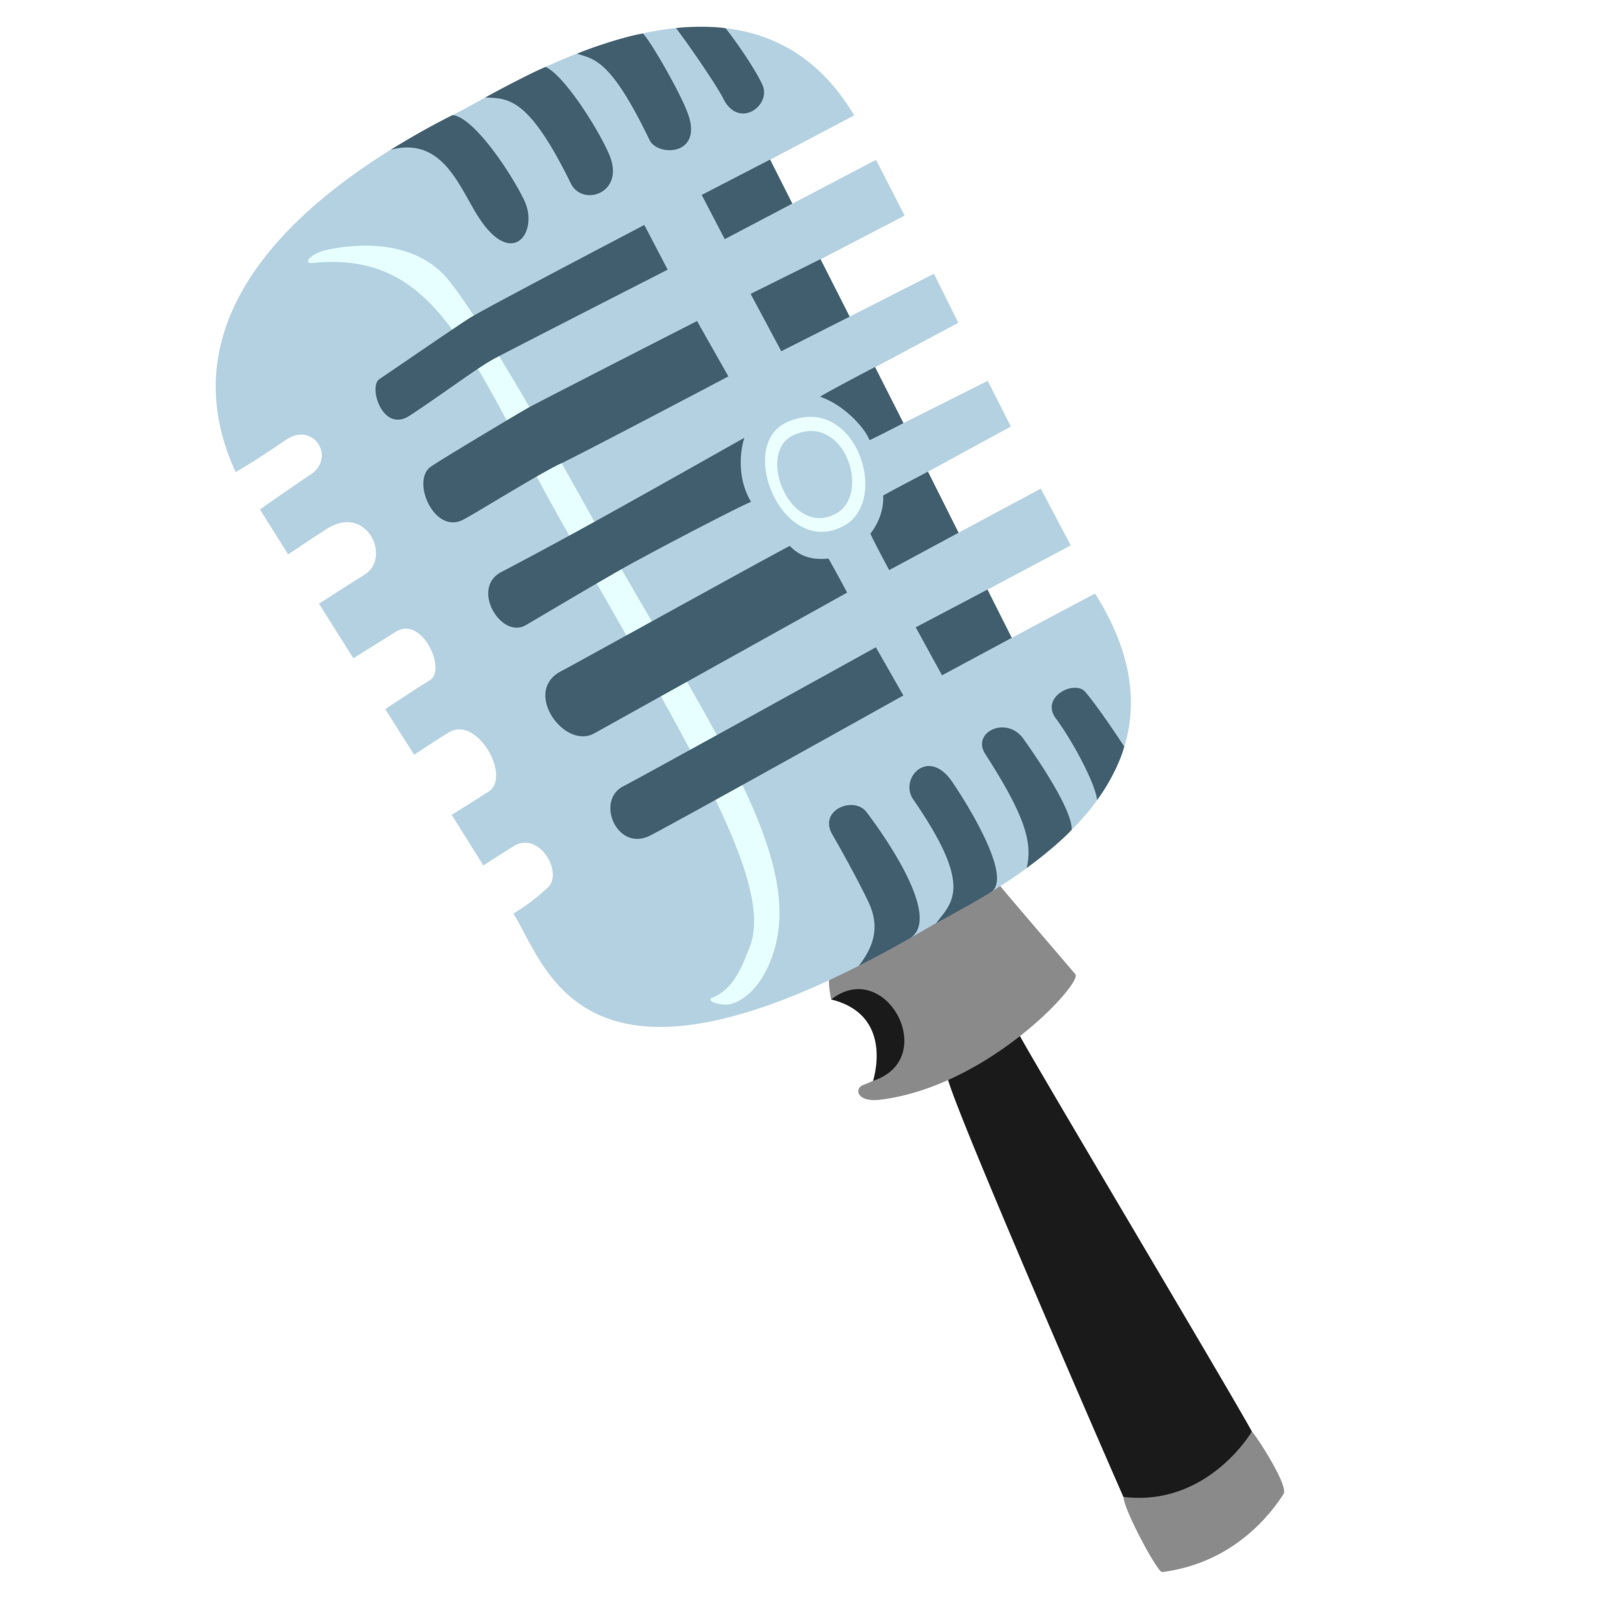 Old school microphone clipart jpg library Microphone Vector by EmbersAtDawn.deviantart.com on @deviantART ... jpg library